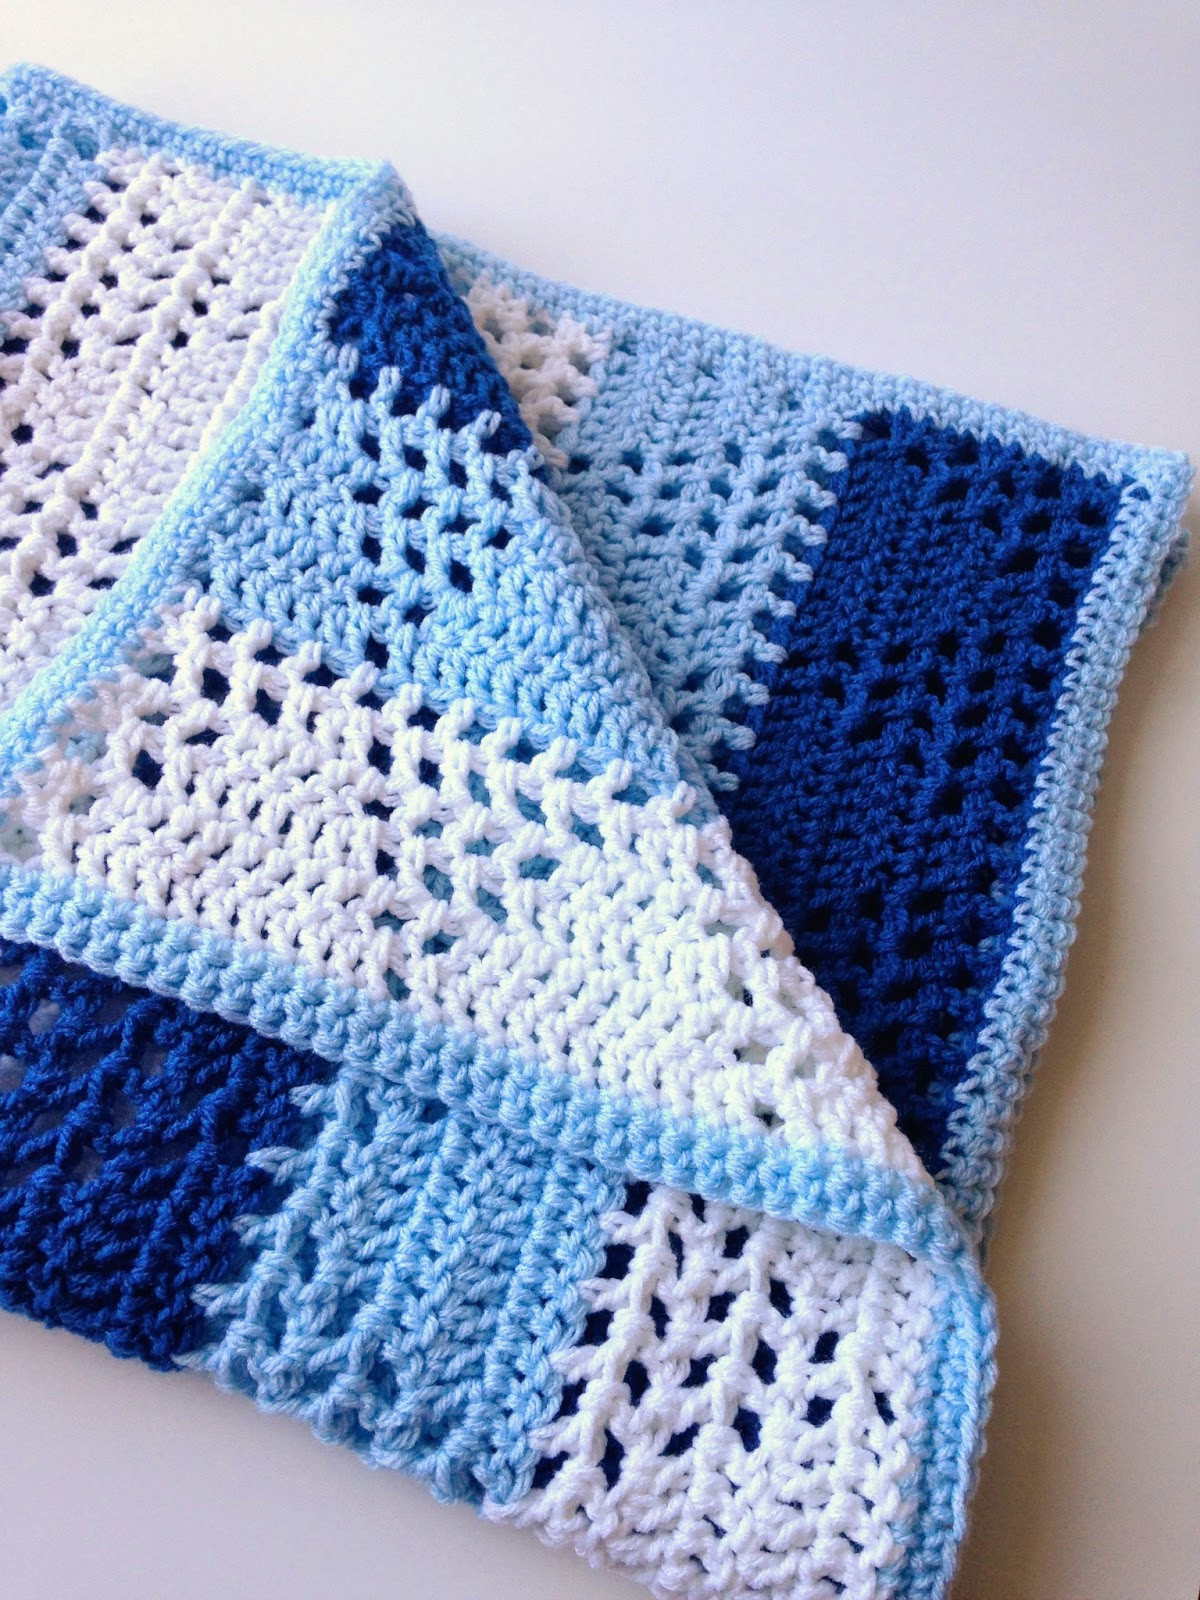 Baby Boy Crochet Blanket Patterns Awesome 5 Little Monsters Triangles & Stripes Baby Blanket Of Baby Boy Crochet Blanket Patterns New Free Baby Blanket Crochet Patterns Easy